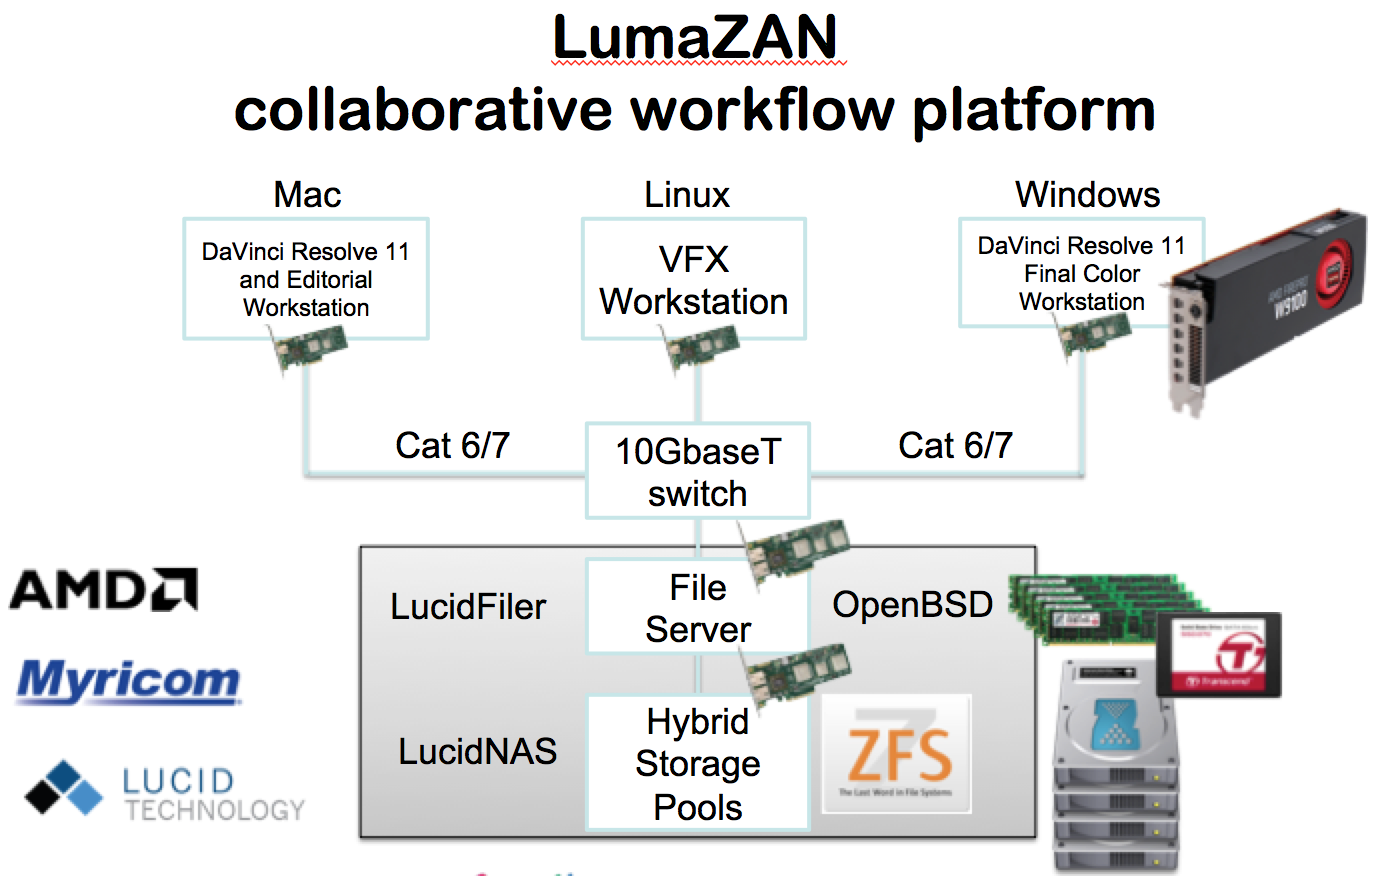 LumaZAN - collaborative workflow platform